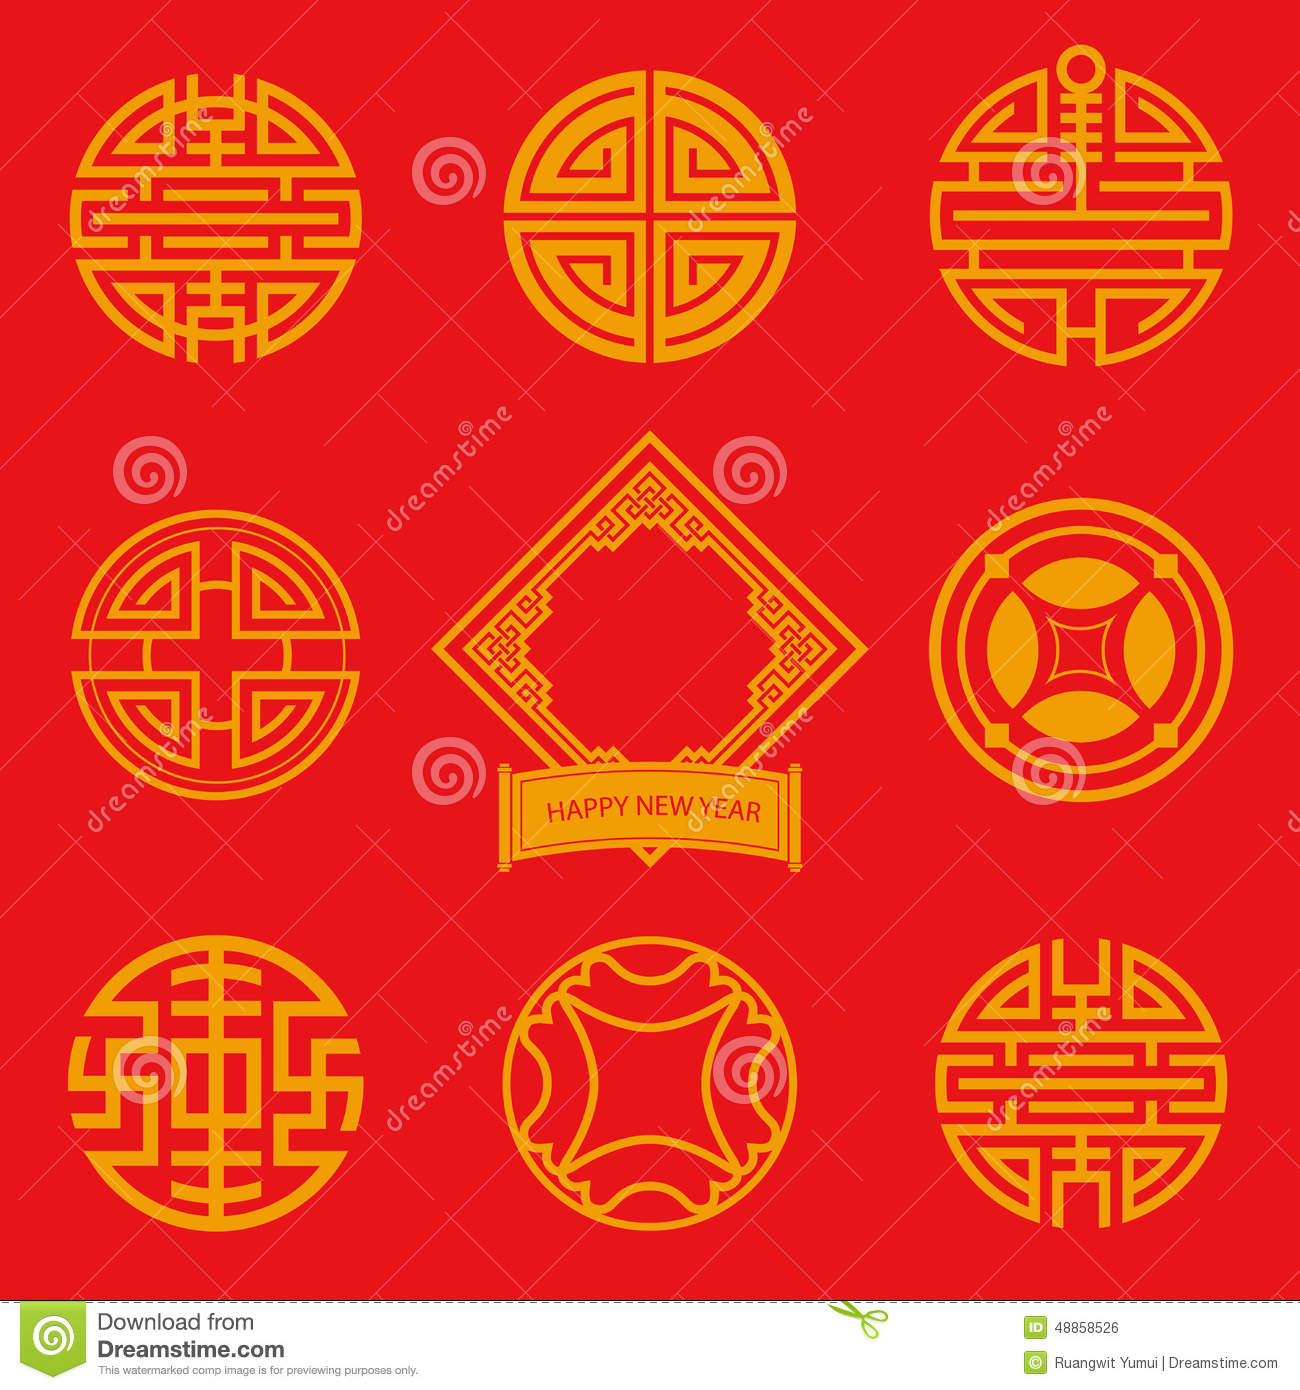 Flat Design Icon Of Chinese Art For Chinese New Year Stock Vector